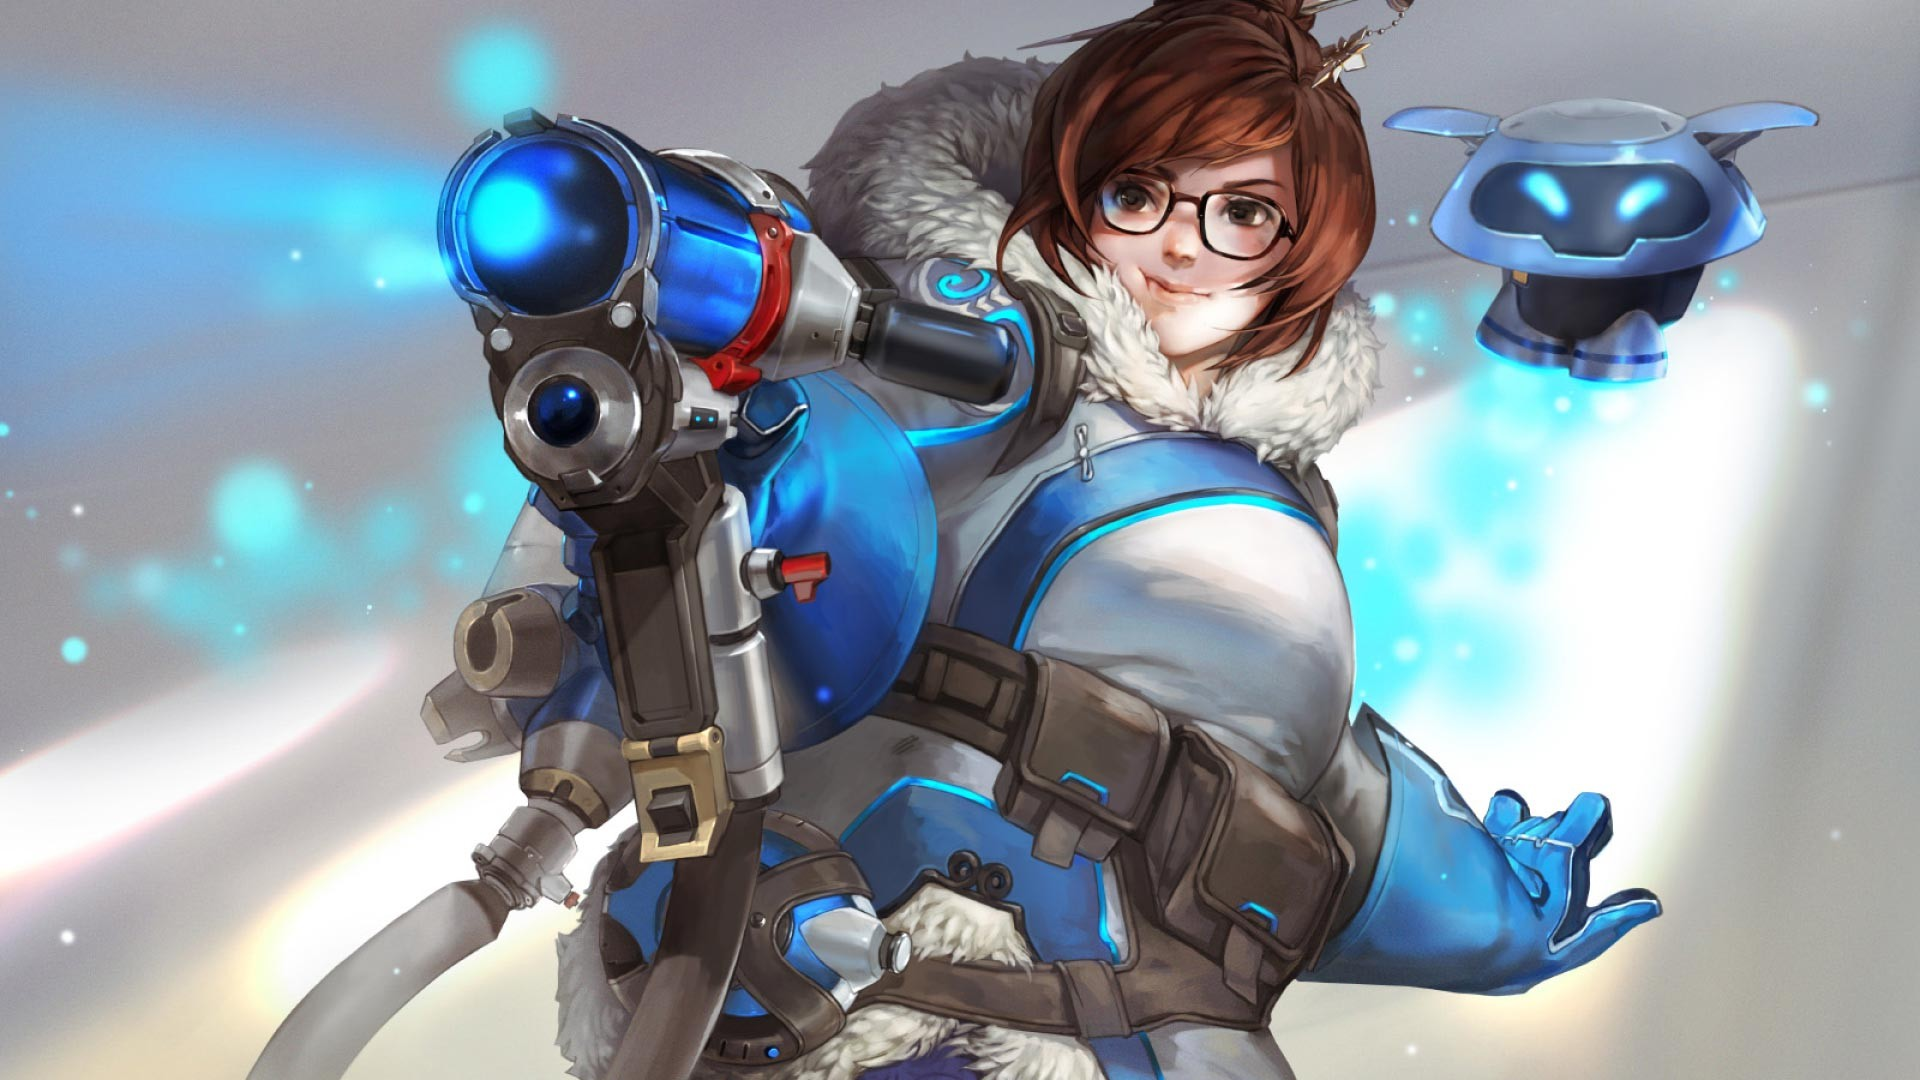 Mei Overwatch Wallpaper ·① Download Free Amazing